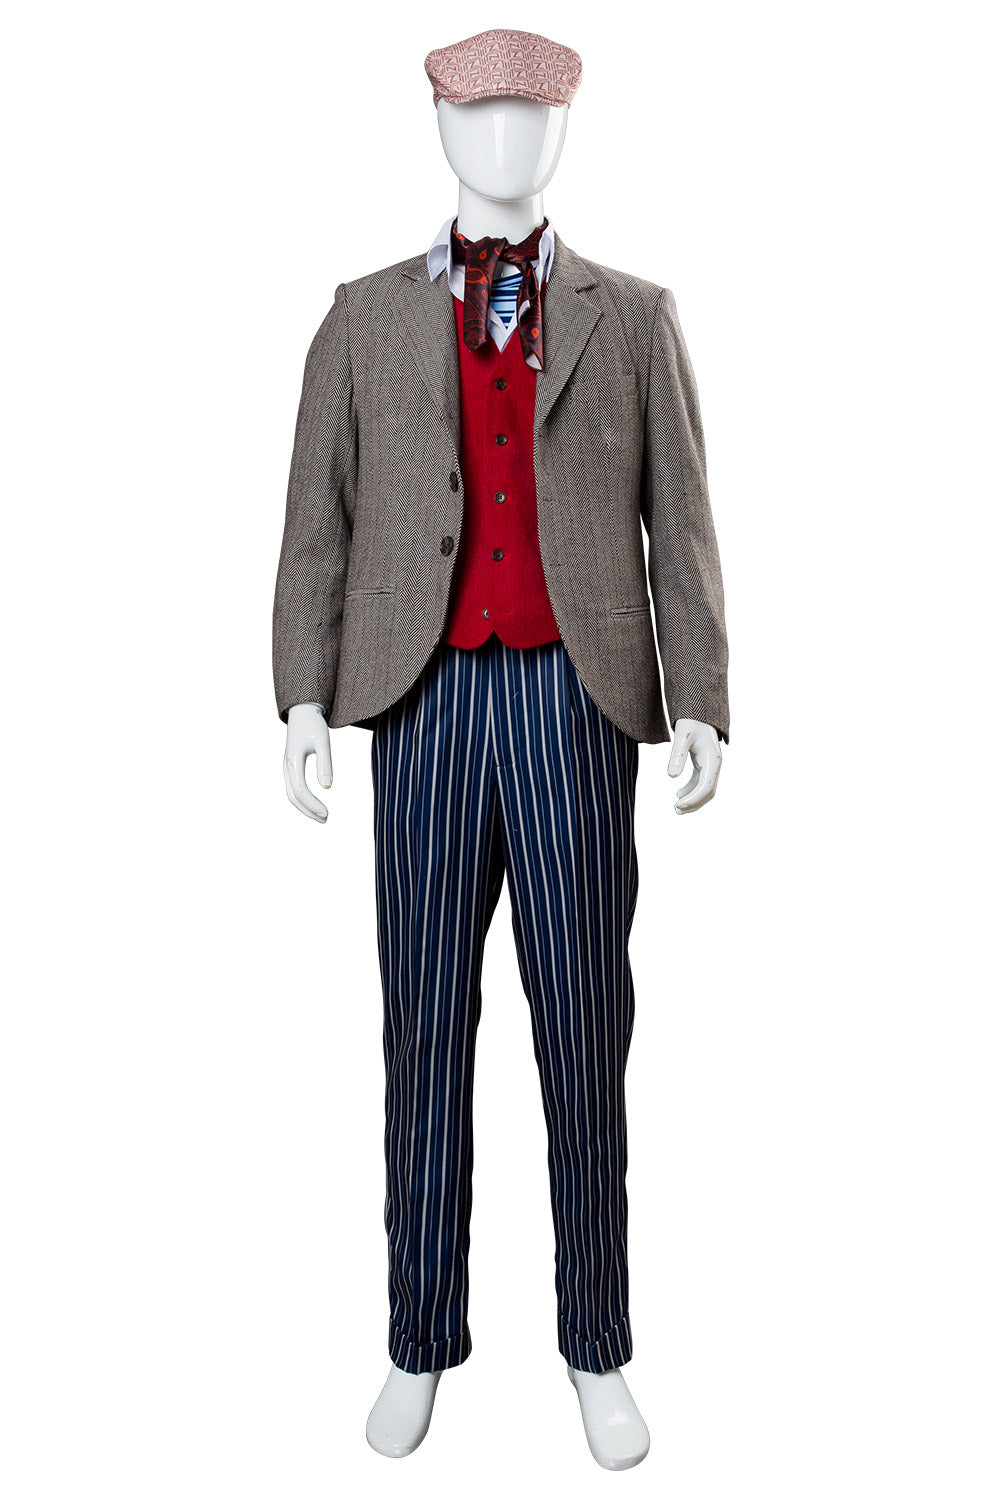 1930s Men's Costumes: Gangster, Clyde Barrow, Mummy, Dracula, Frankenstein 2018 Mary Poppins Returns 2 Lin-Manuel Miranda Jack Cosplay Costume $146.00 AT vintagedancer.com